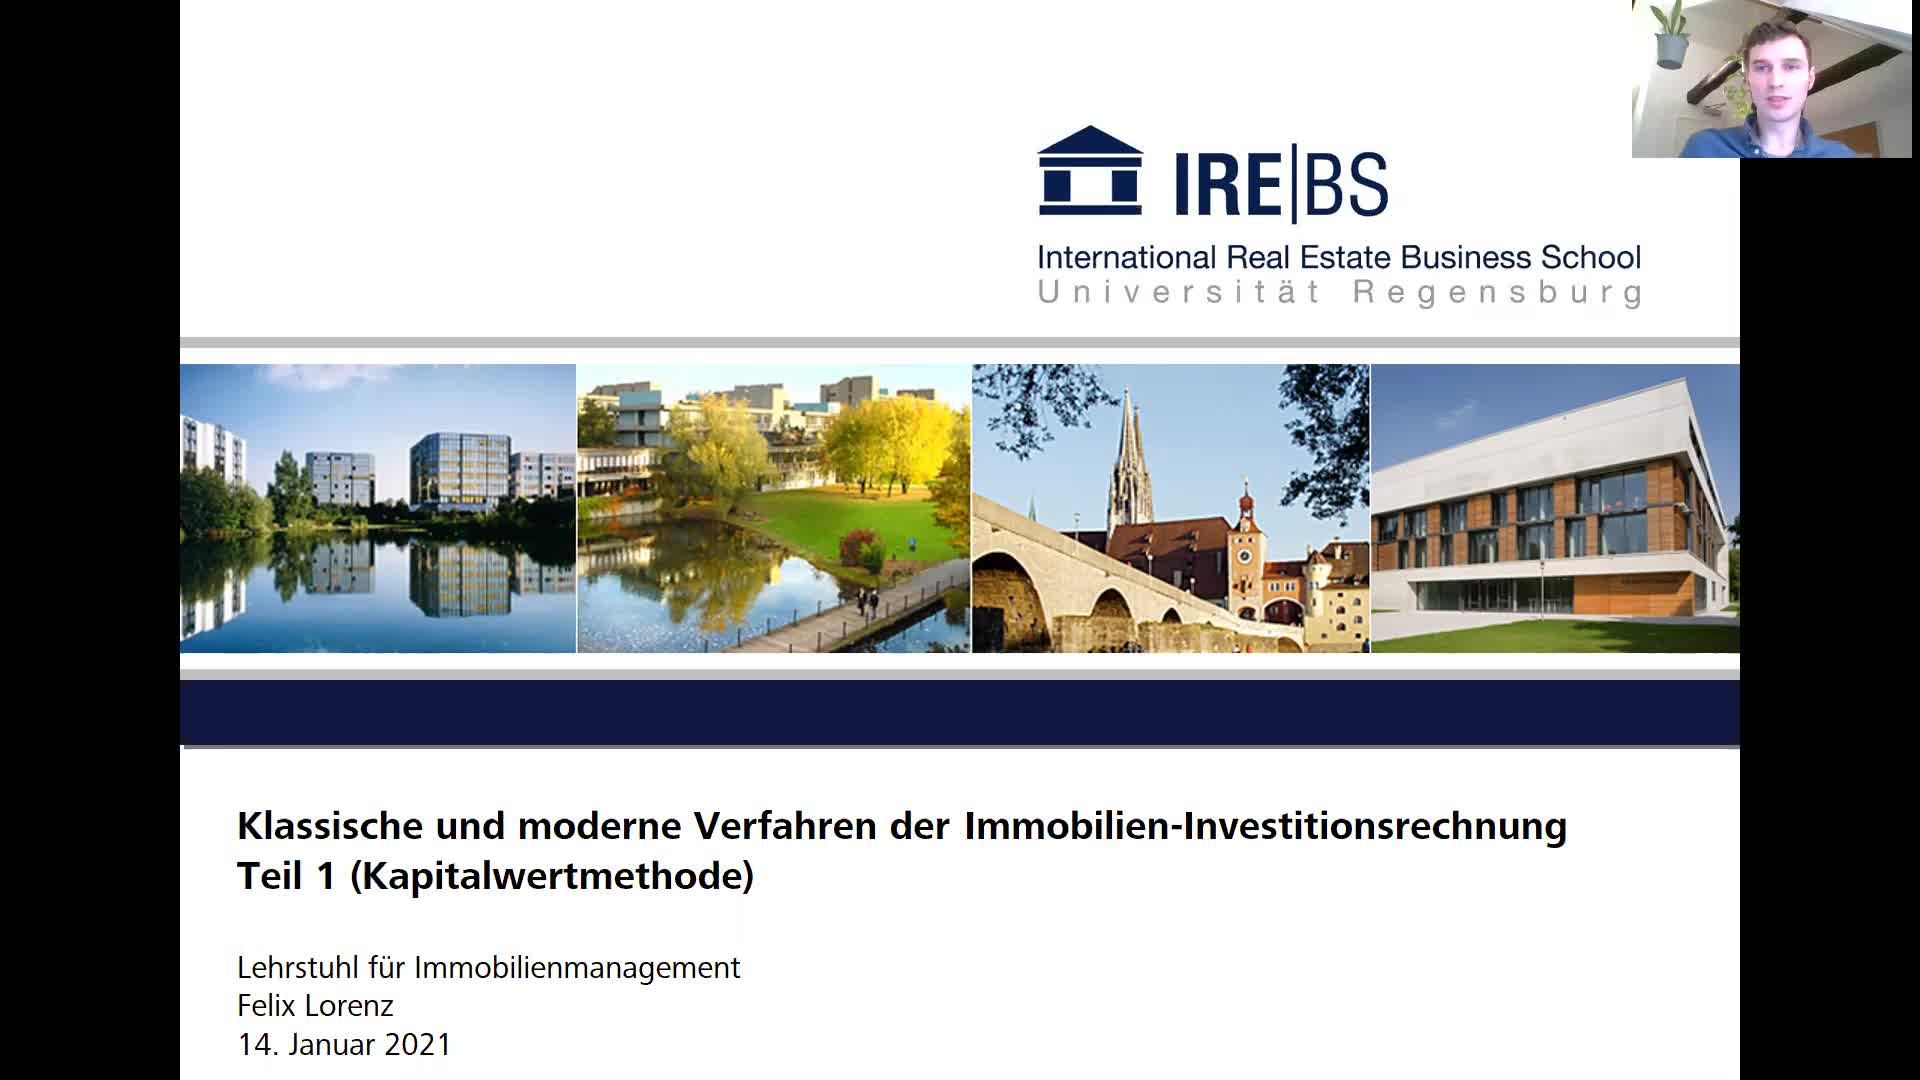 Immobilien-Investitionsrechnung - Teil 1